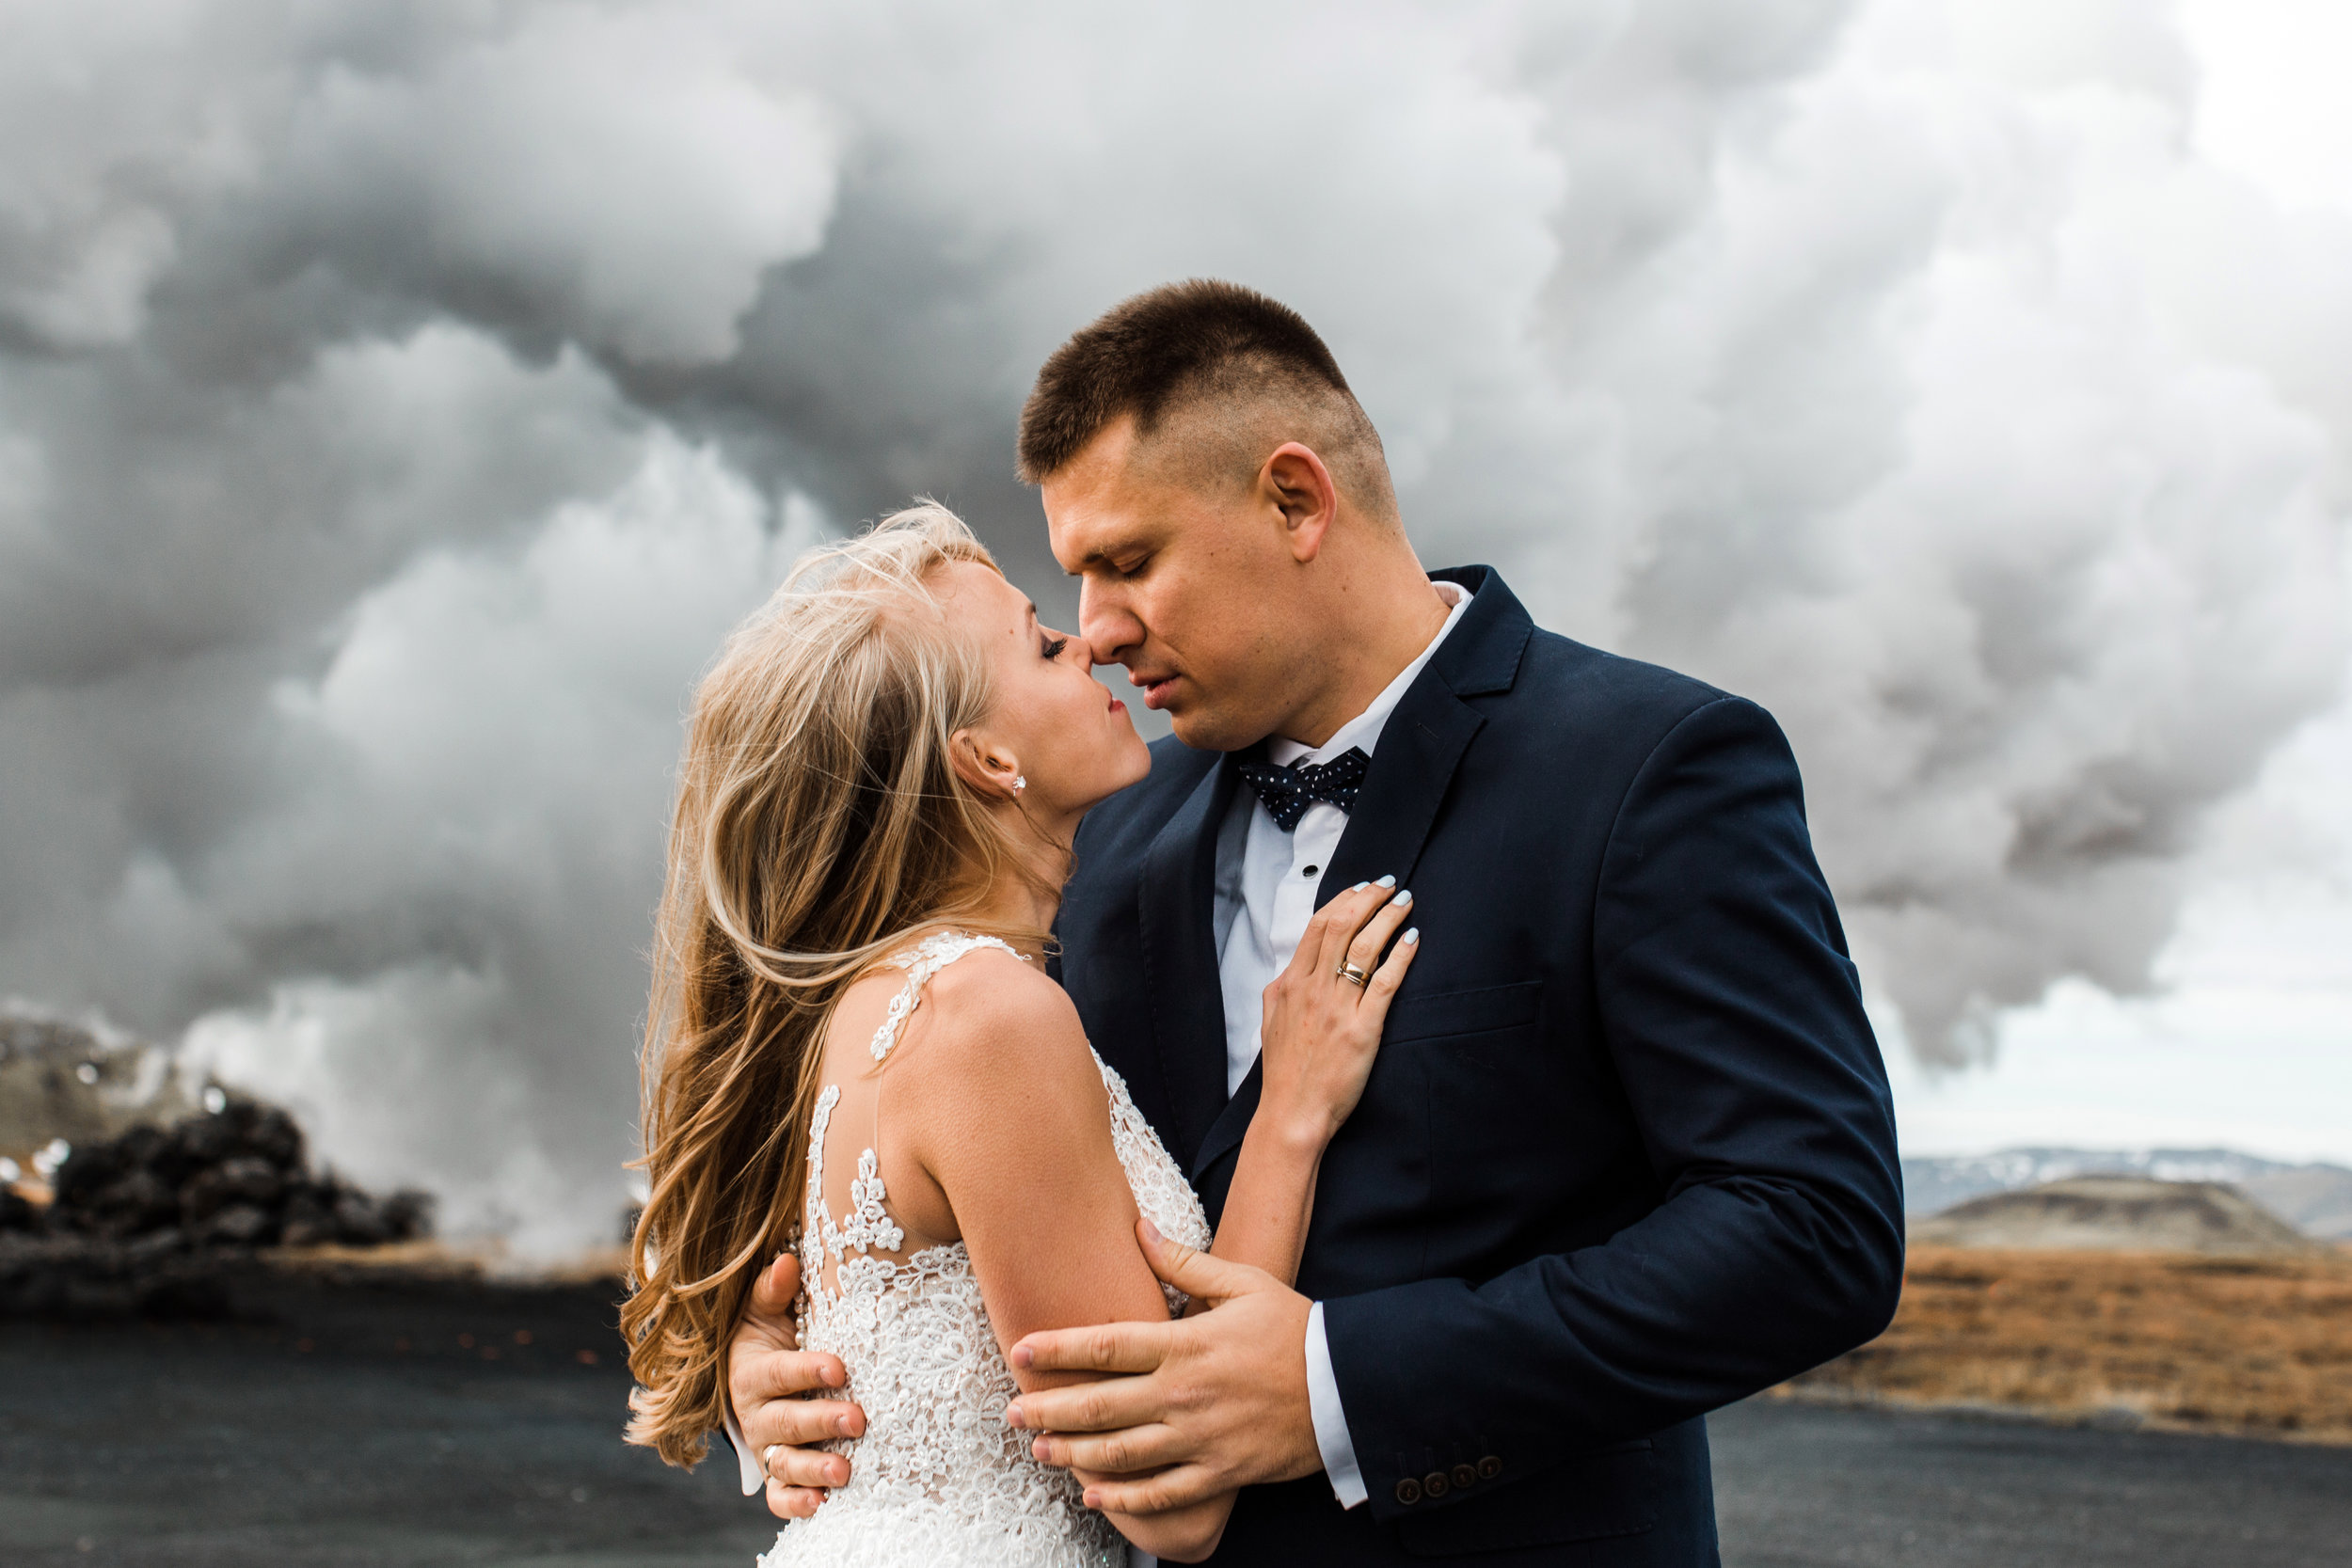 Iceland Wedding Elopement Photographer | Bettina Vass Photography.jpeg